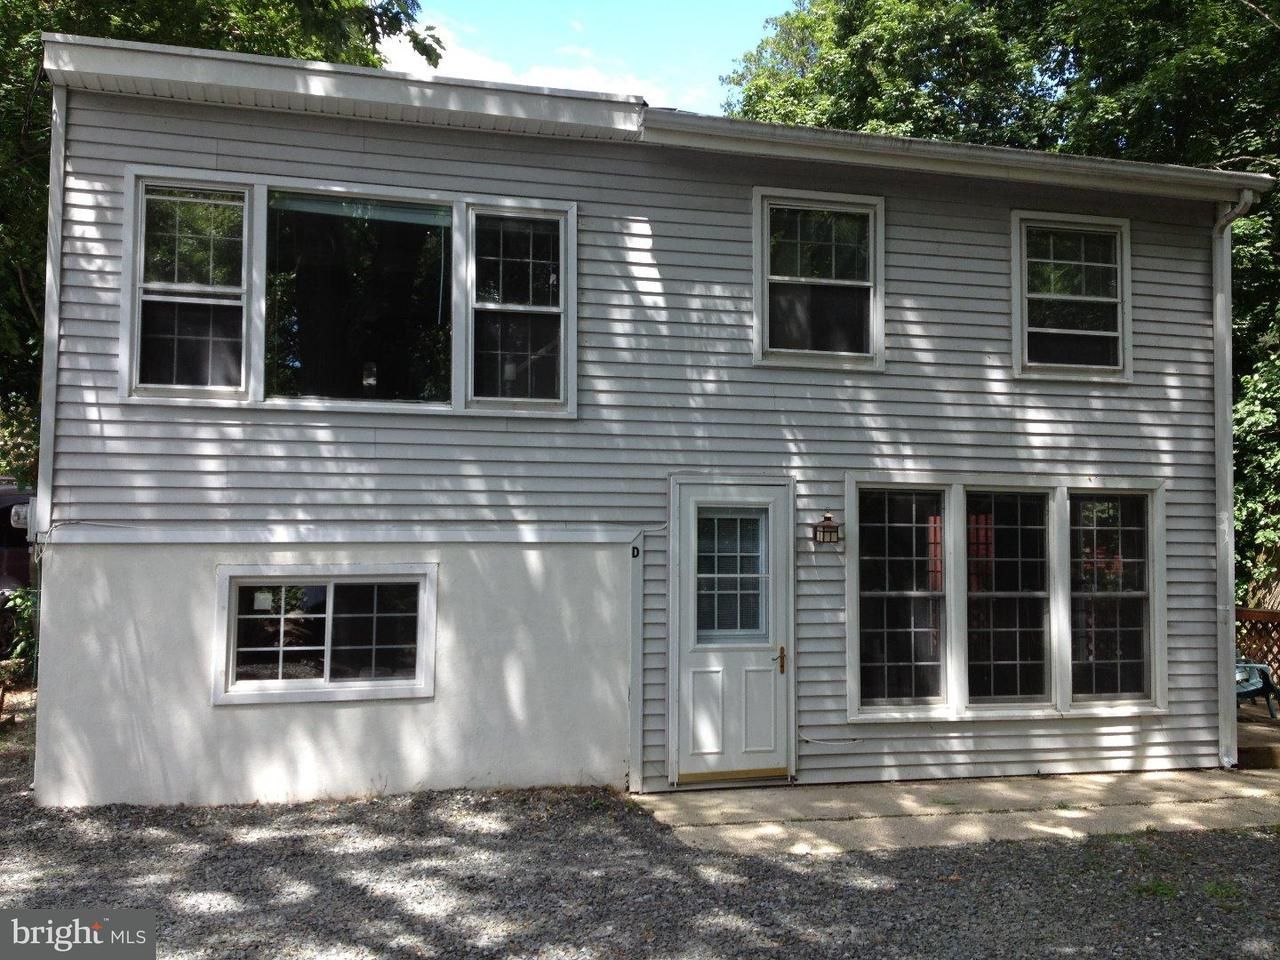 Single Family Home for Rent at 568 D MAIN ST #D Lumberton, New Jersey 08048 United States